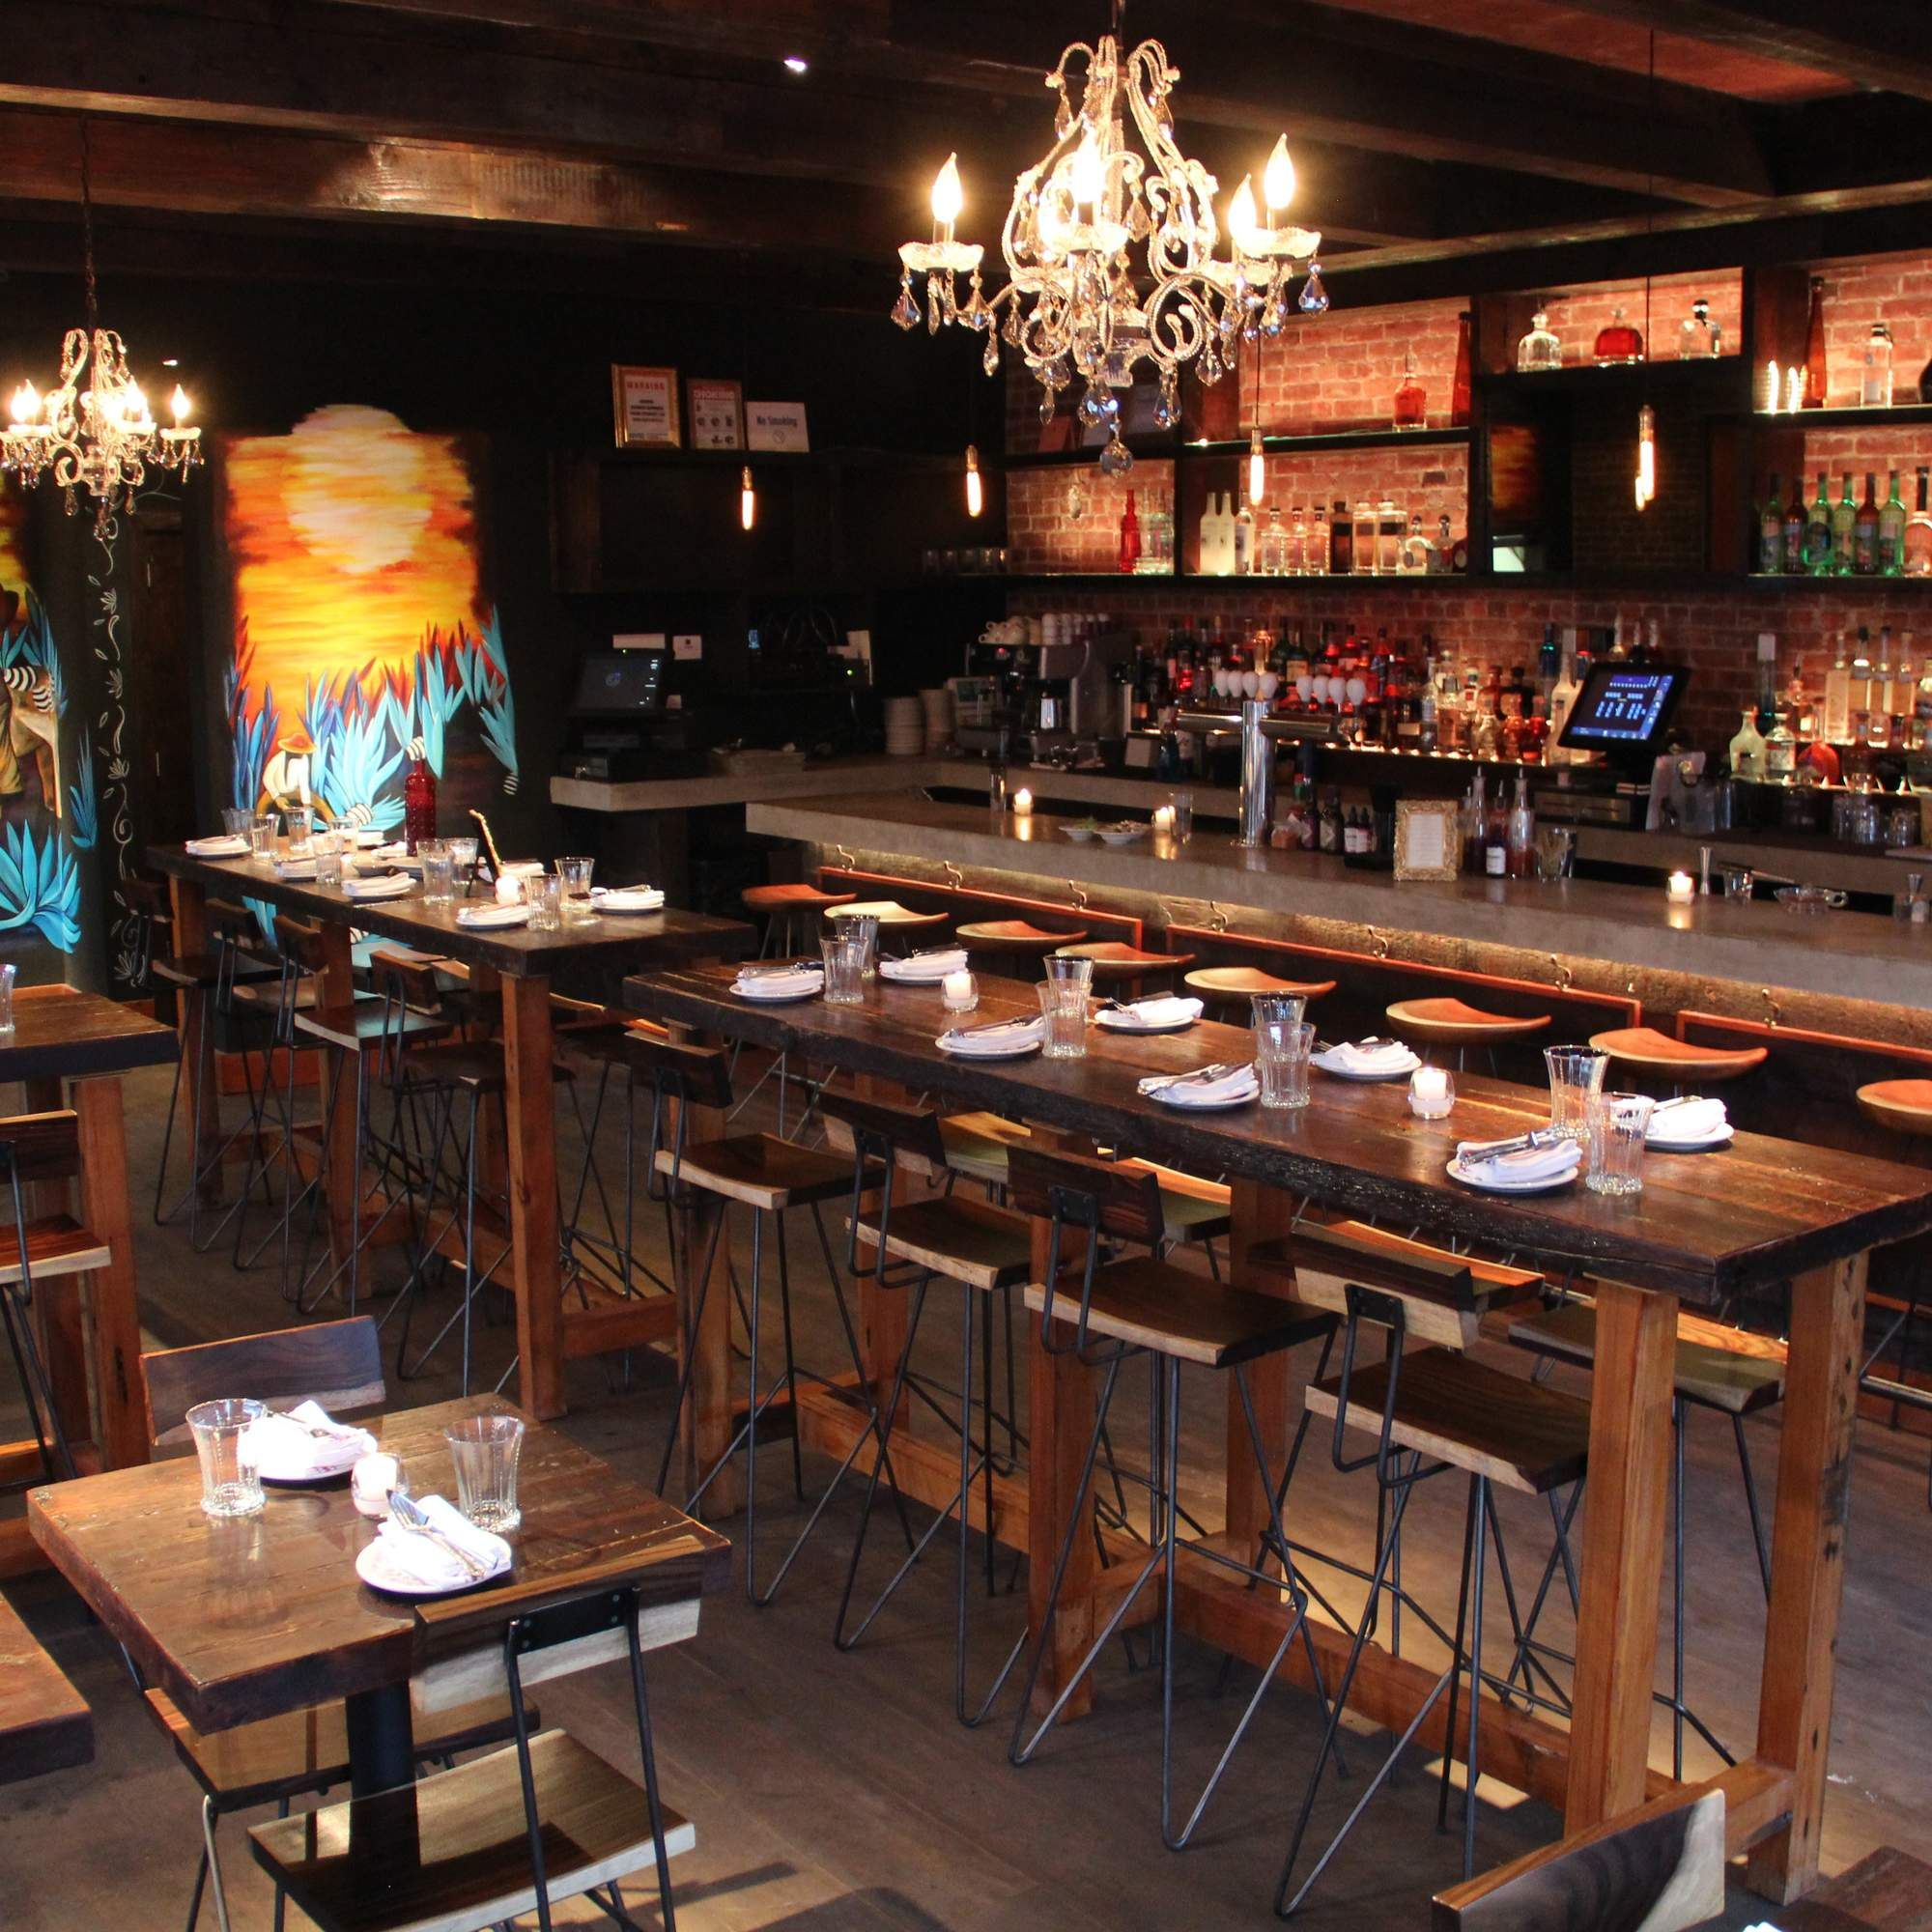 The Nyc Top Chef Dining Guide Nyc Living Anejo Bar Set Up